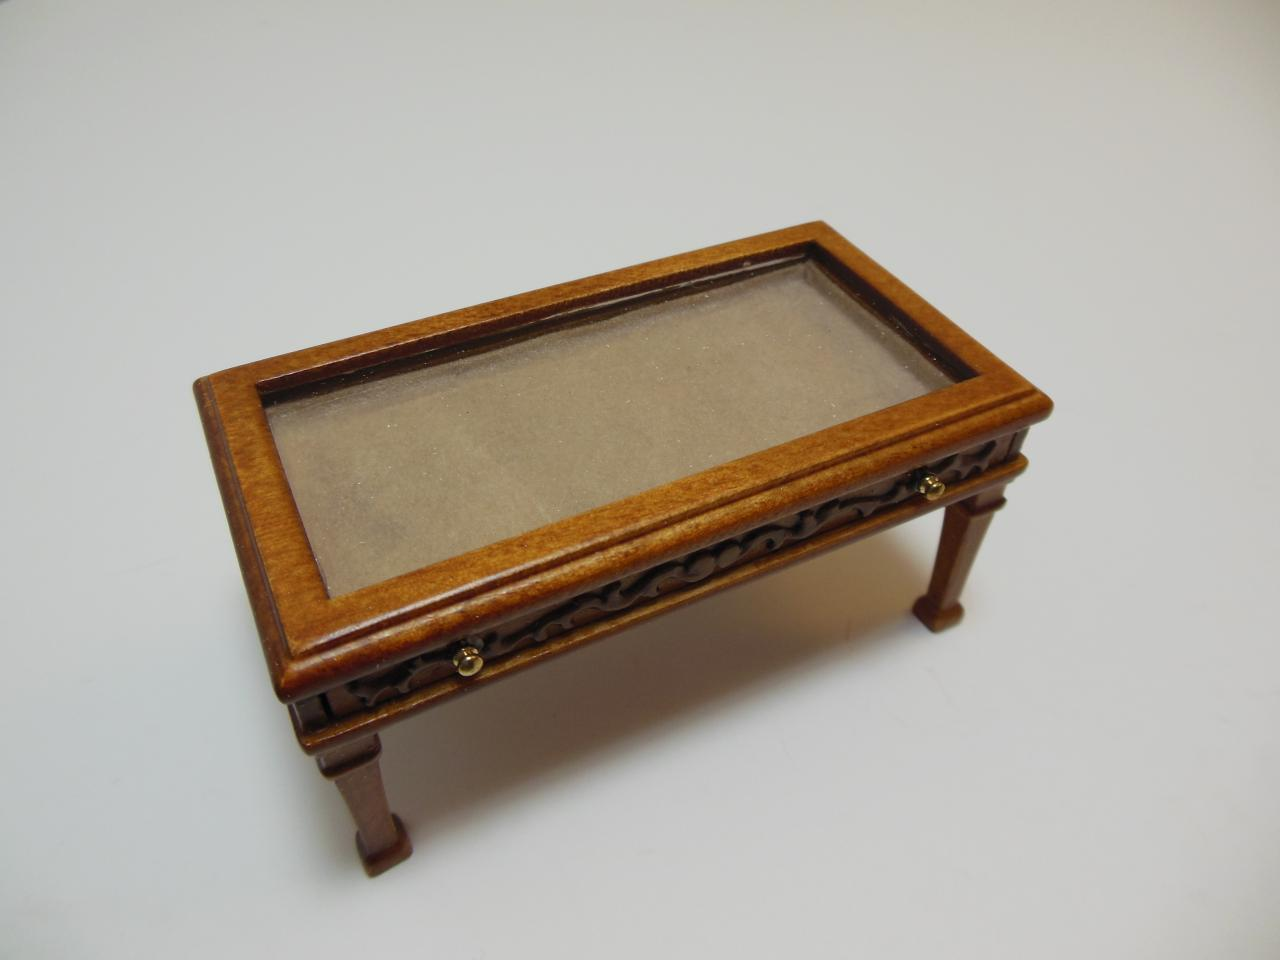 Dollhouse Miniature 12032wn Glass Top Display Coffee Table Images Hosted At